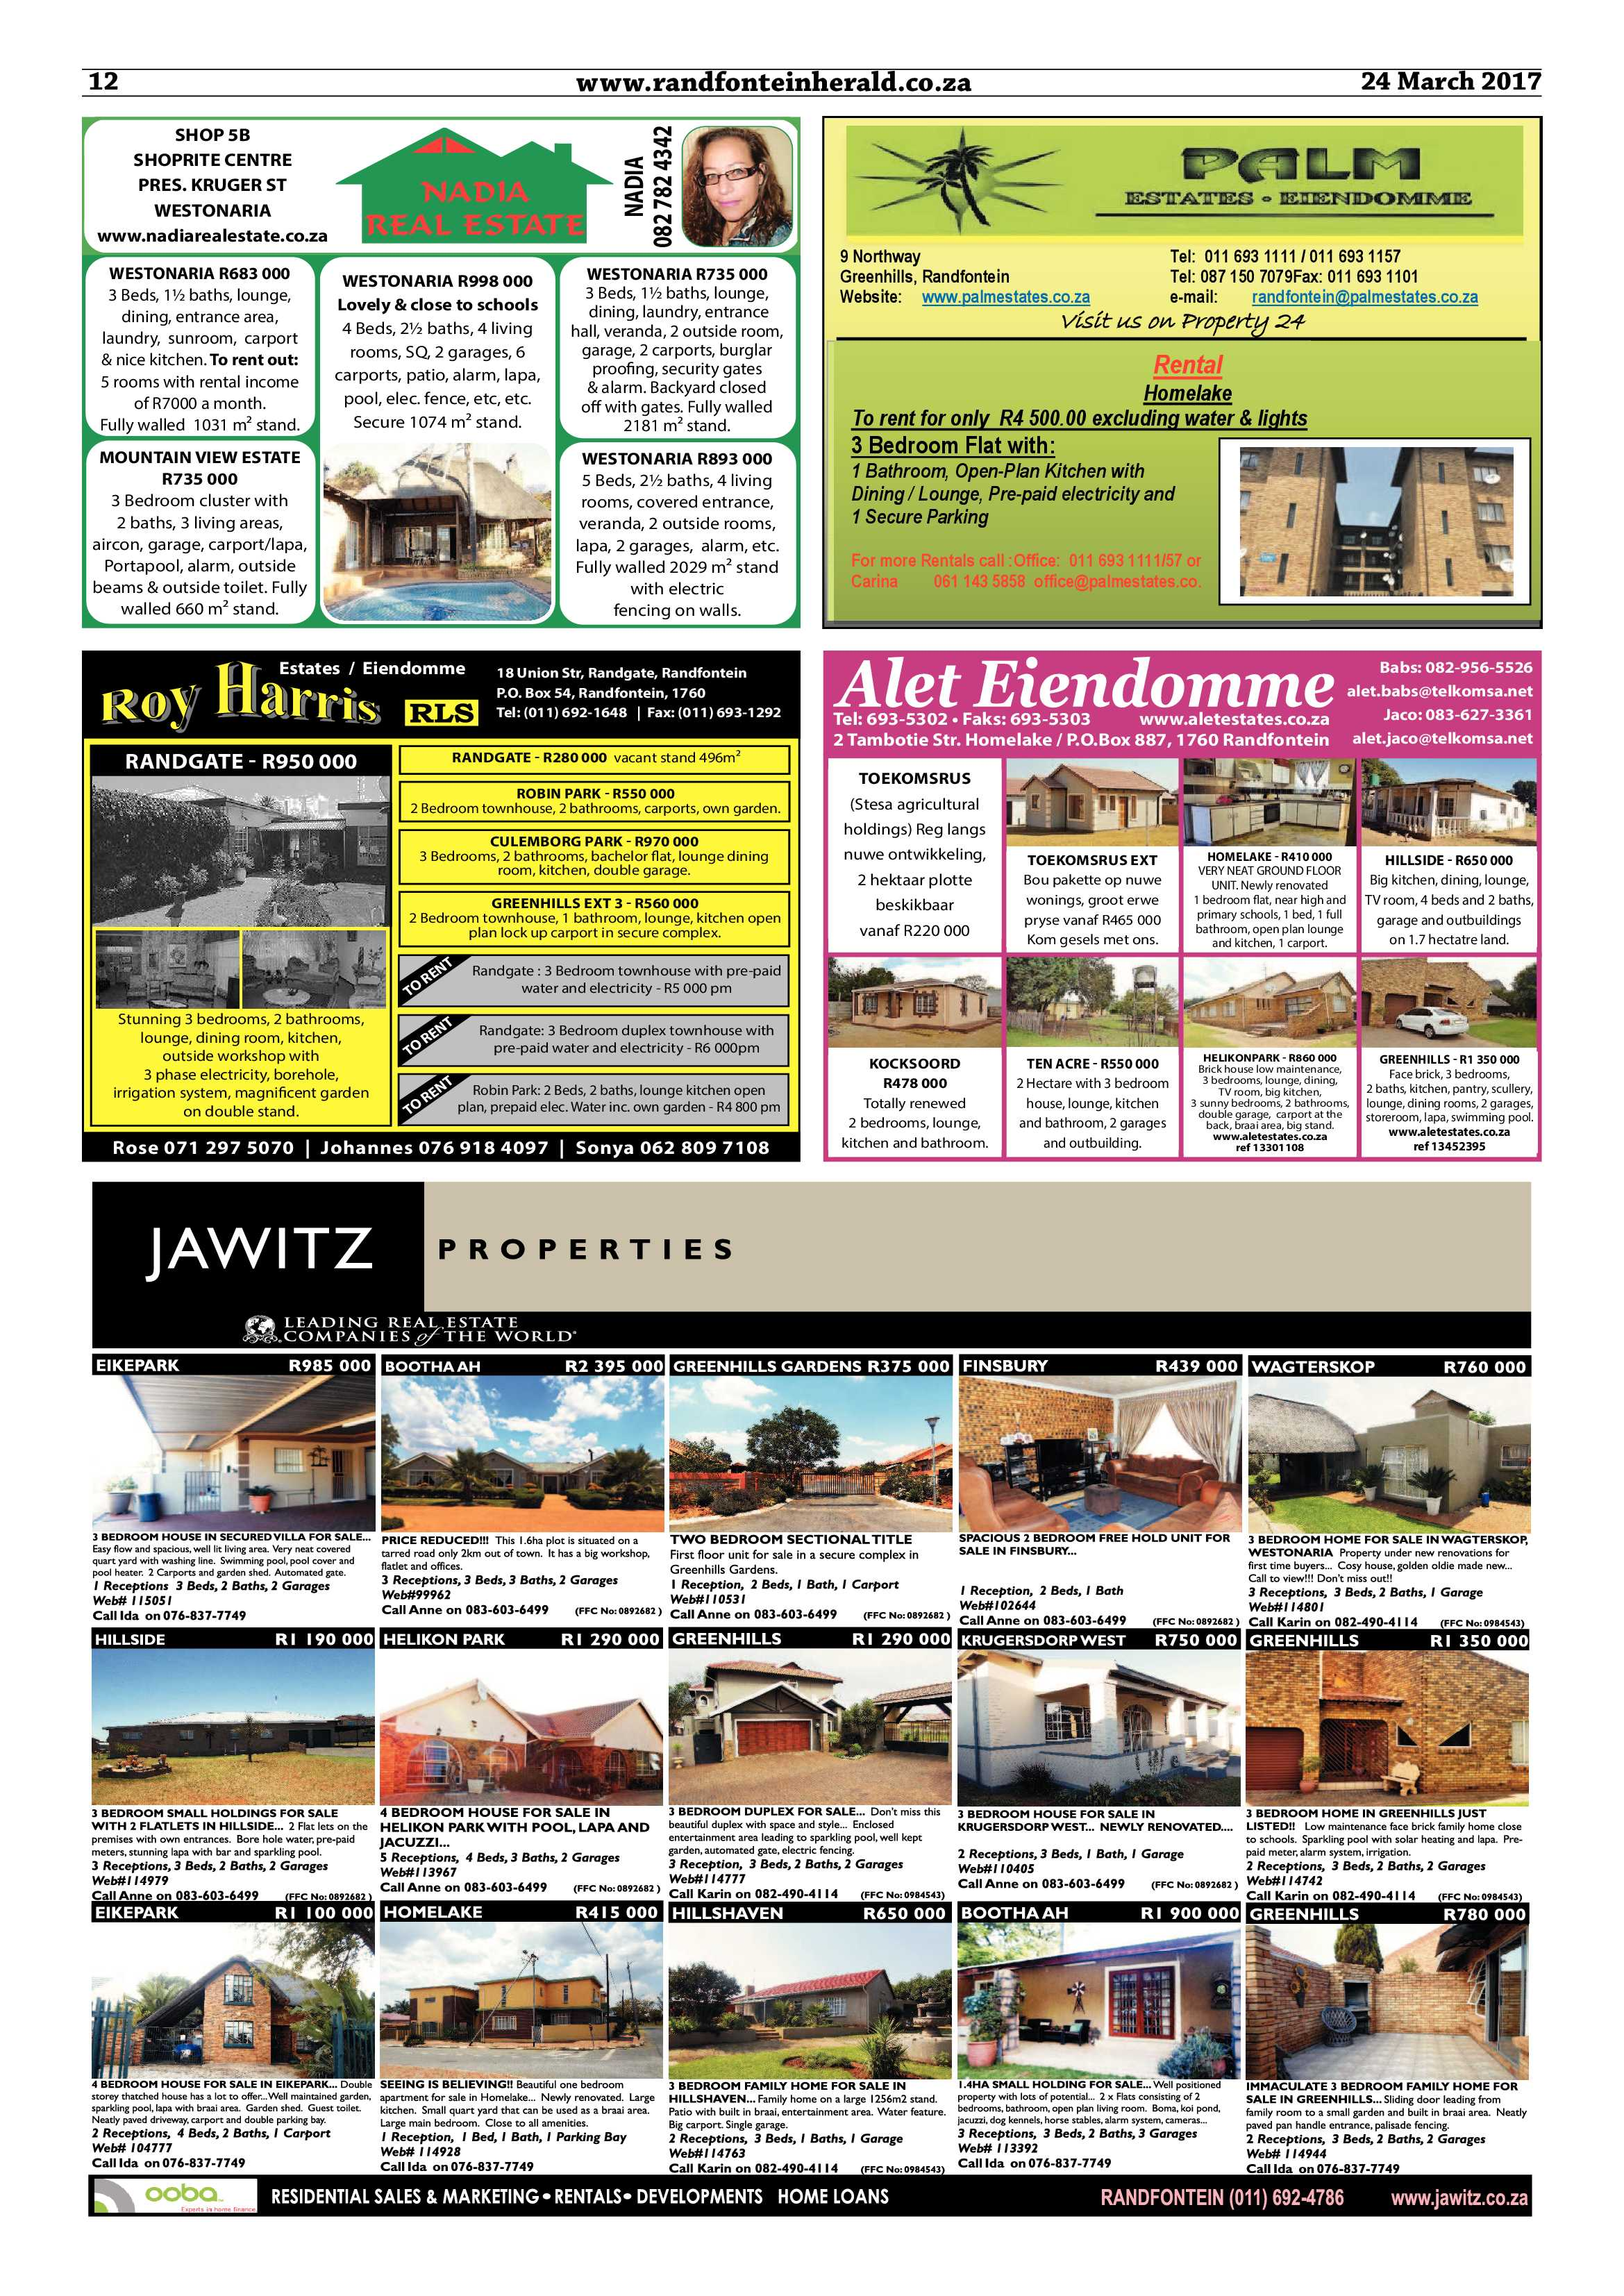 randfontein-herald-24-march-2017-epapers-page-12